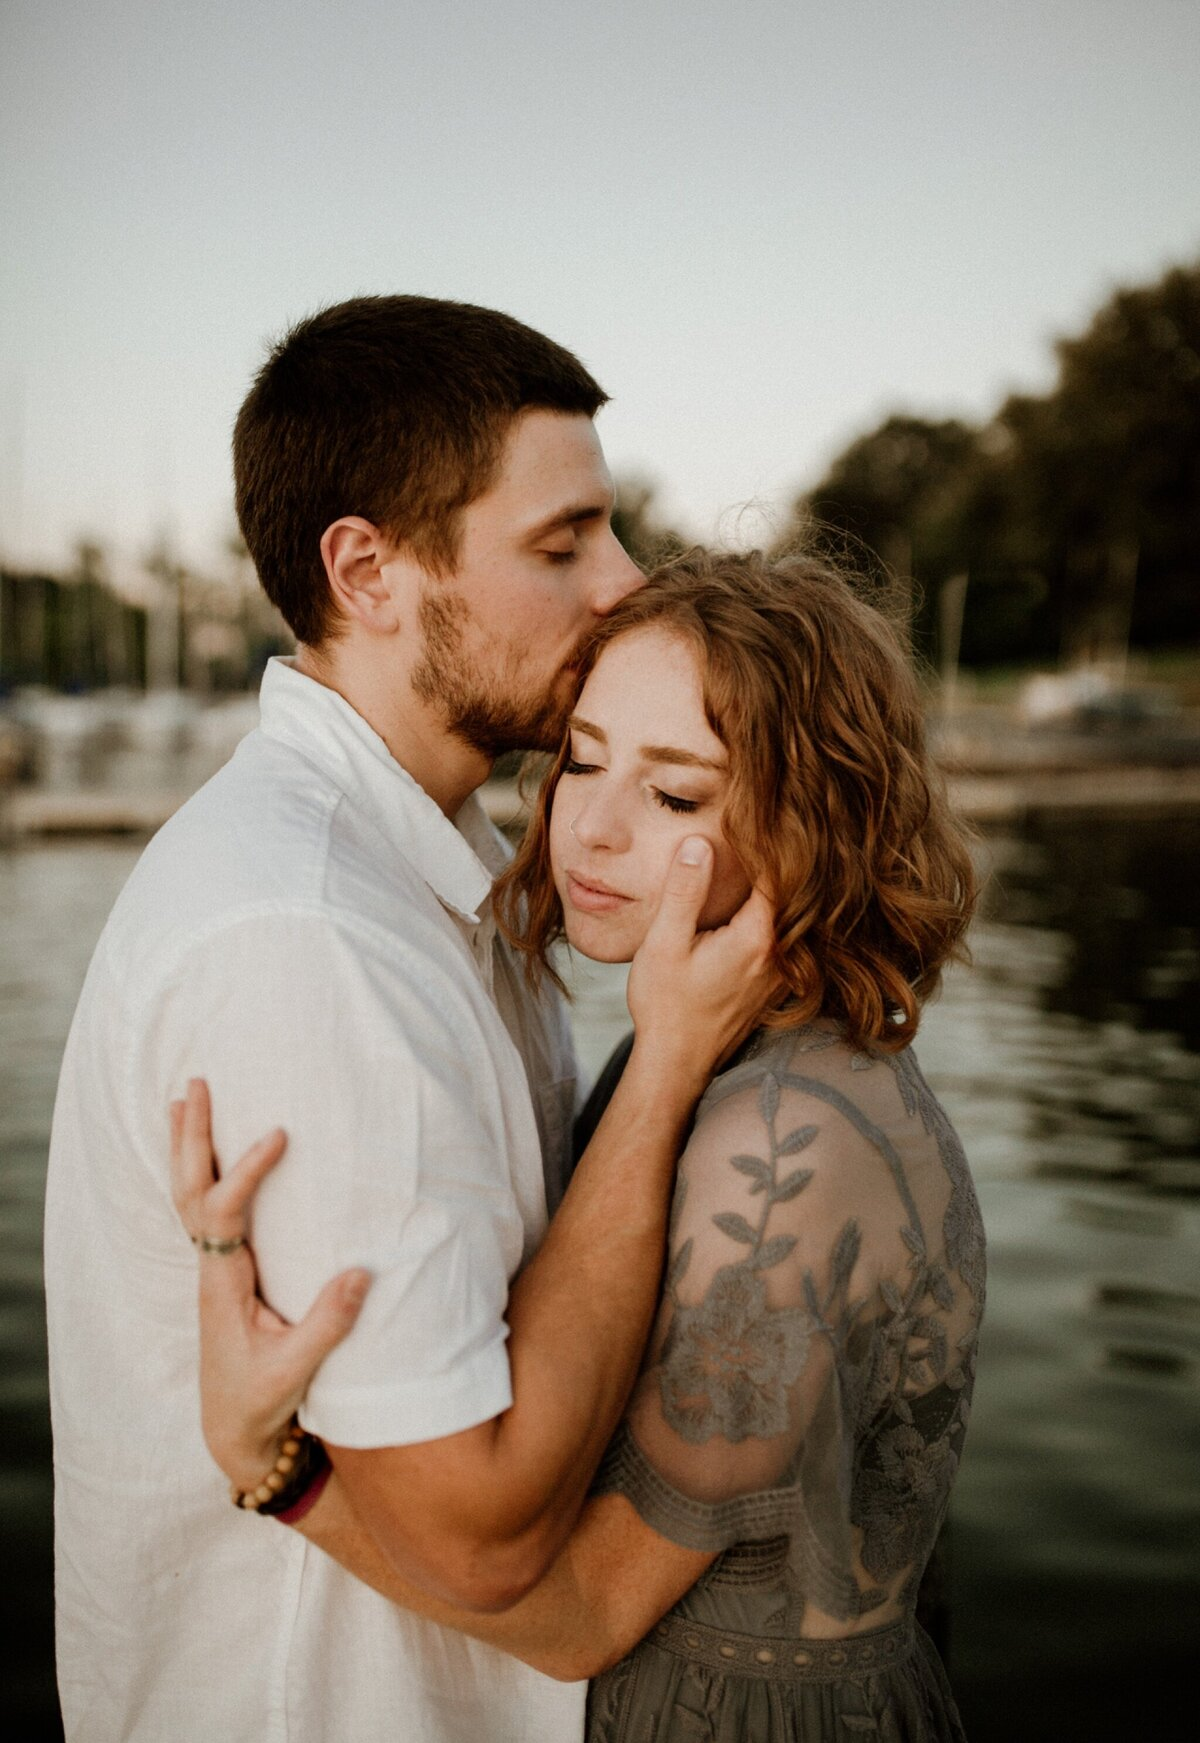 meg-thompson-photography-prairie-creek-reservoir-couples-session-kat-chris-18